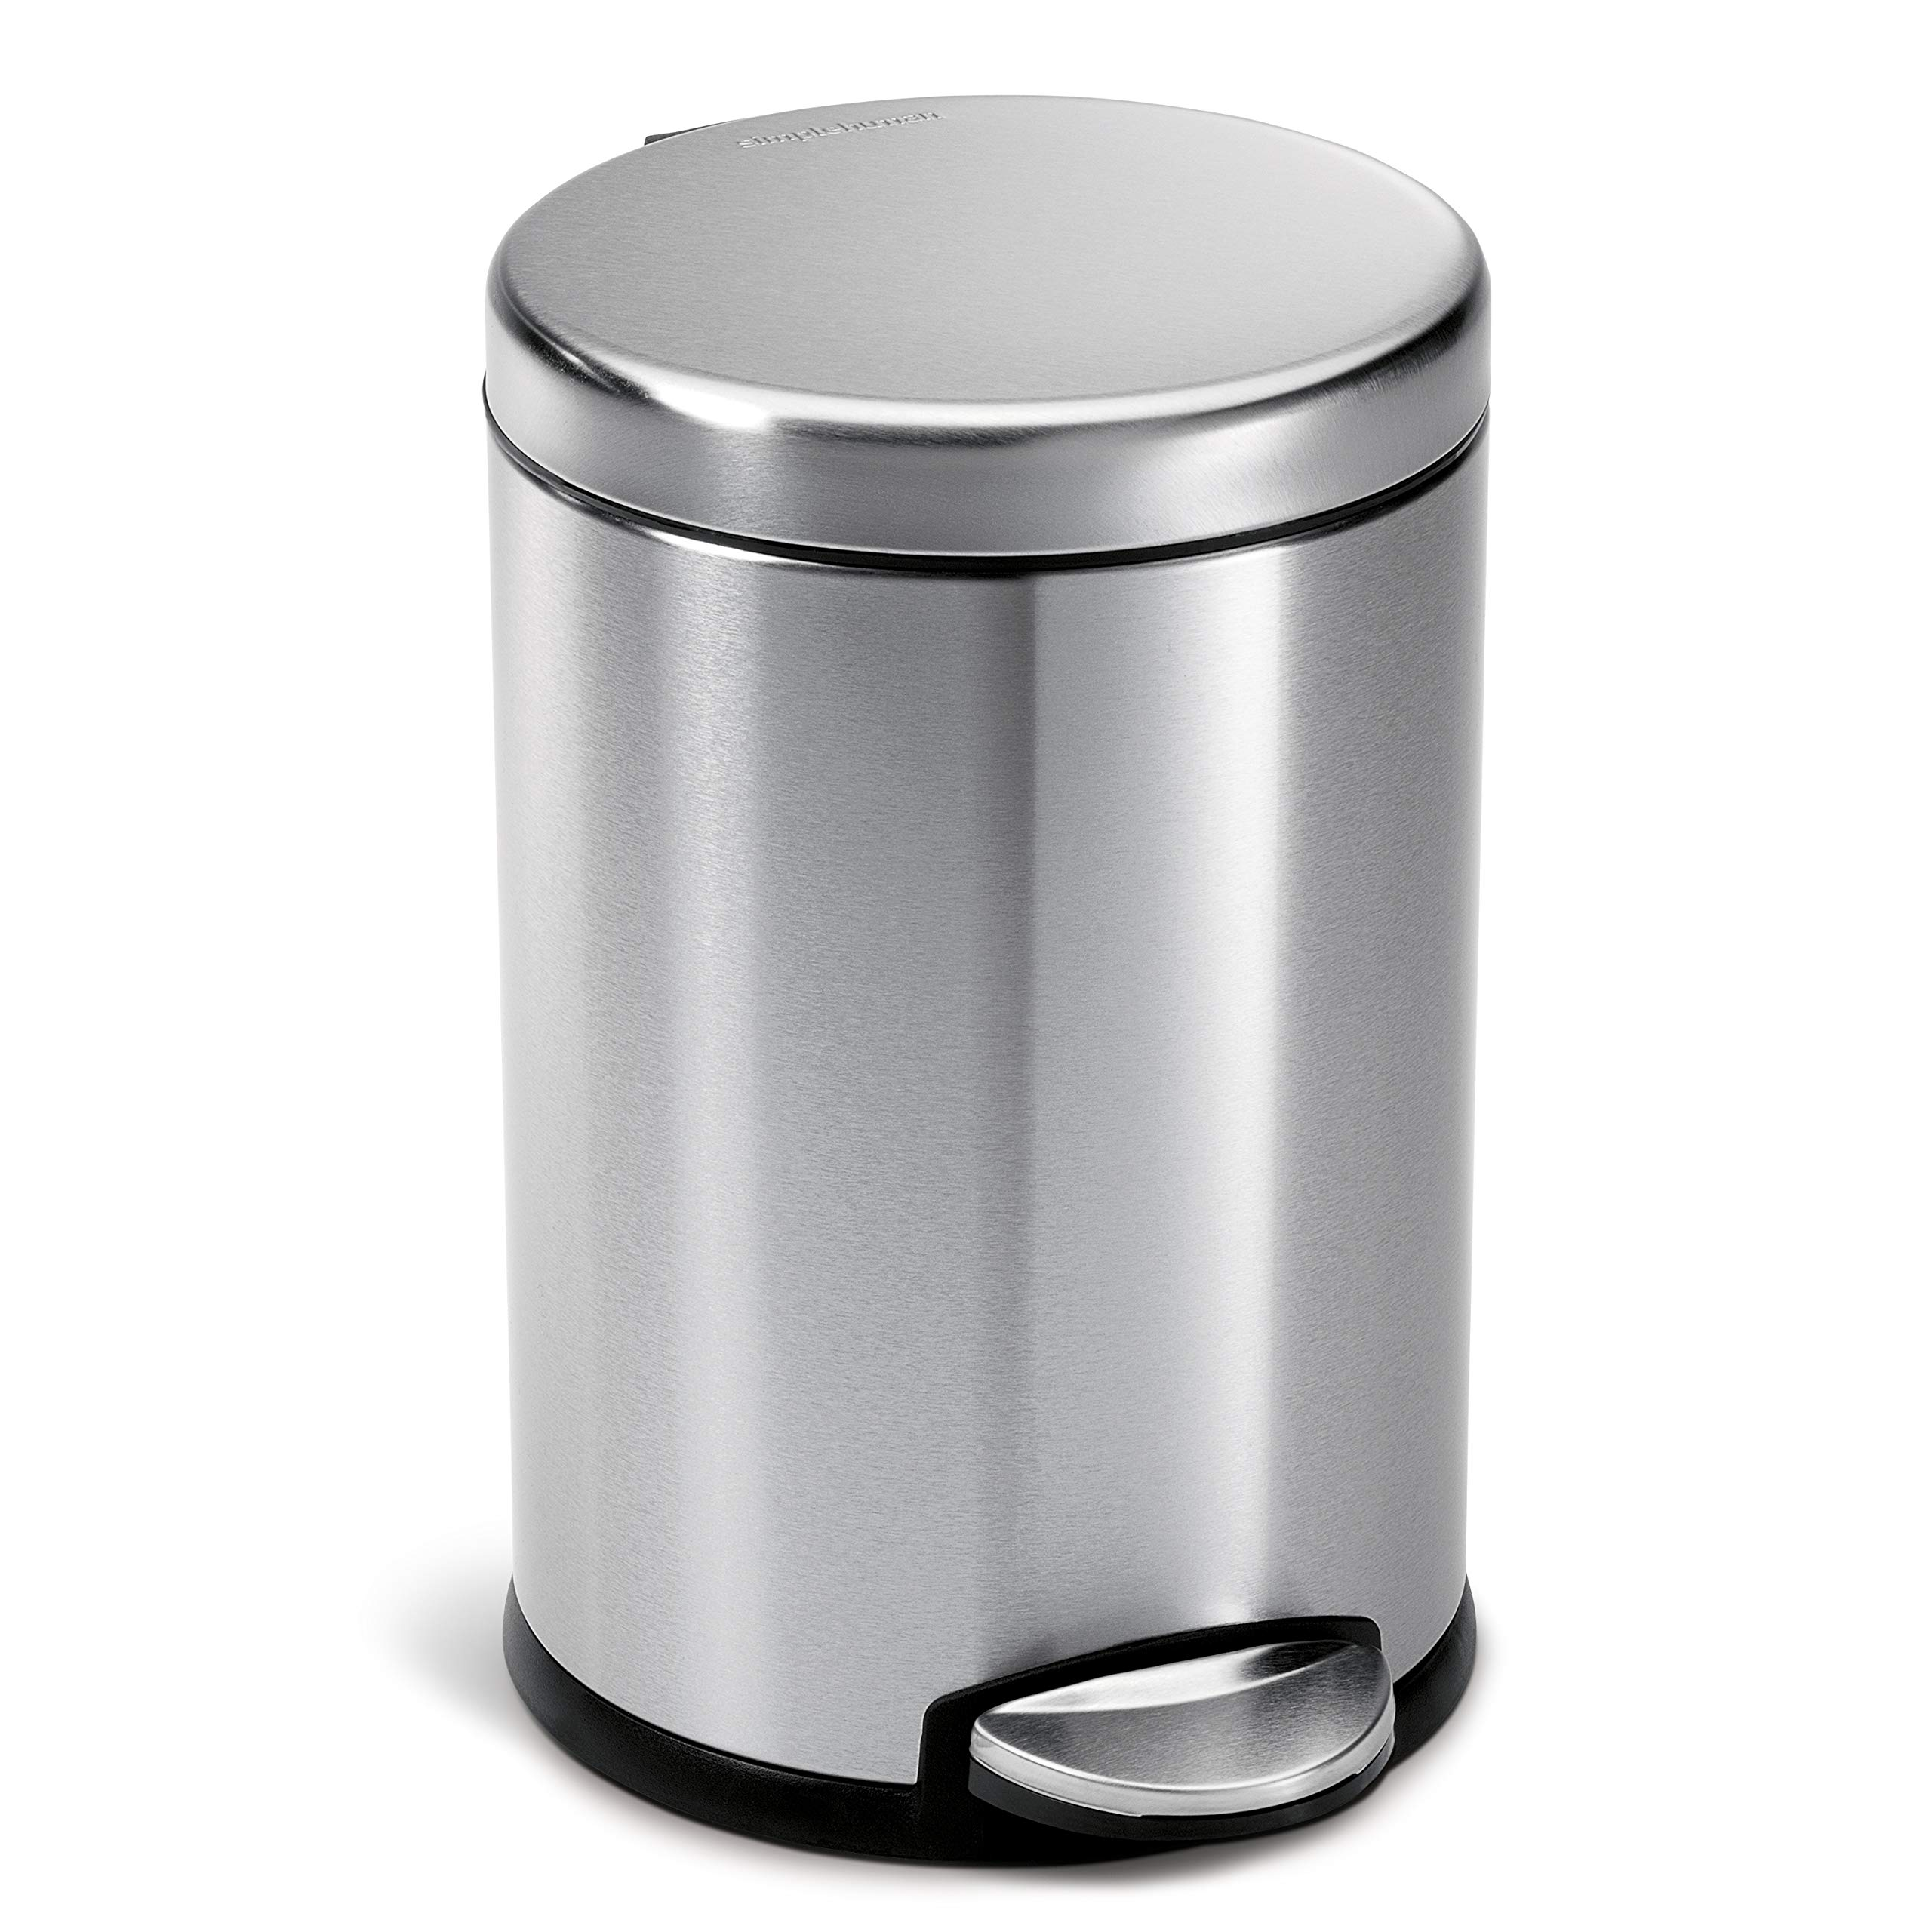 simplehuman 4.5 Liter / 1.2 Gallon Compact Round Bathroom, Brushed Stainless Steel trash can by simplehuman